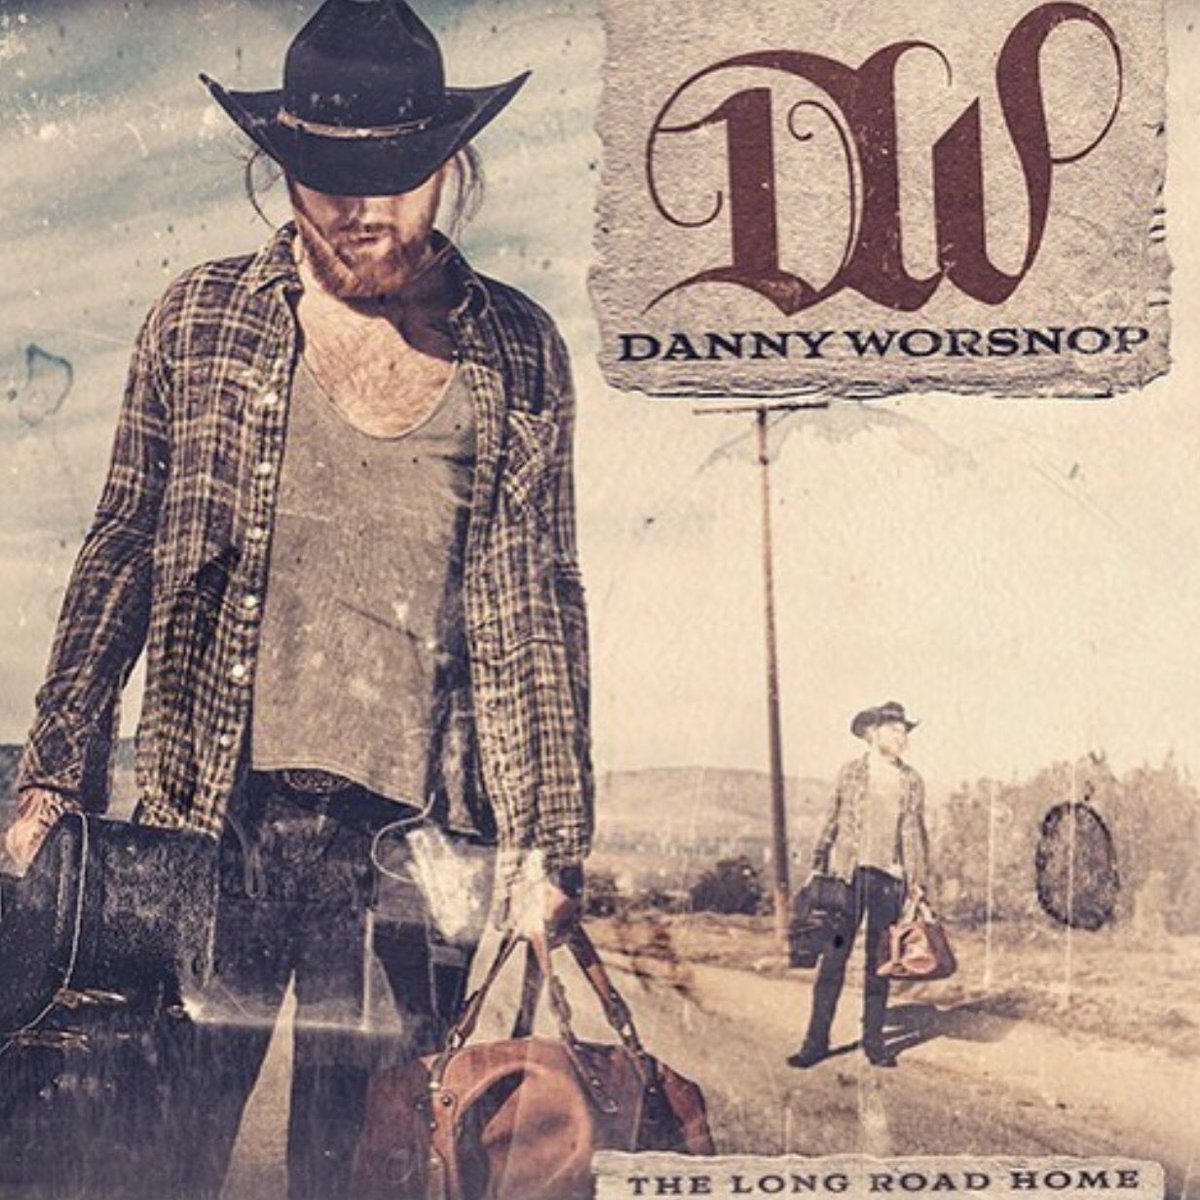 Danny Worsnop - The Long Road Home - Album Cover